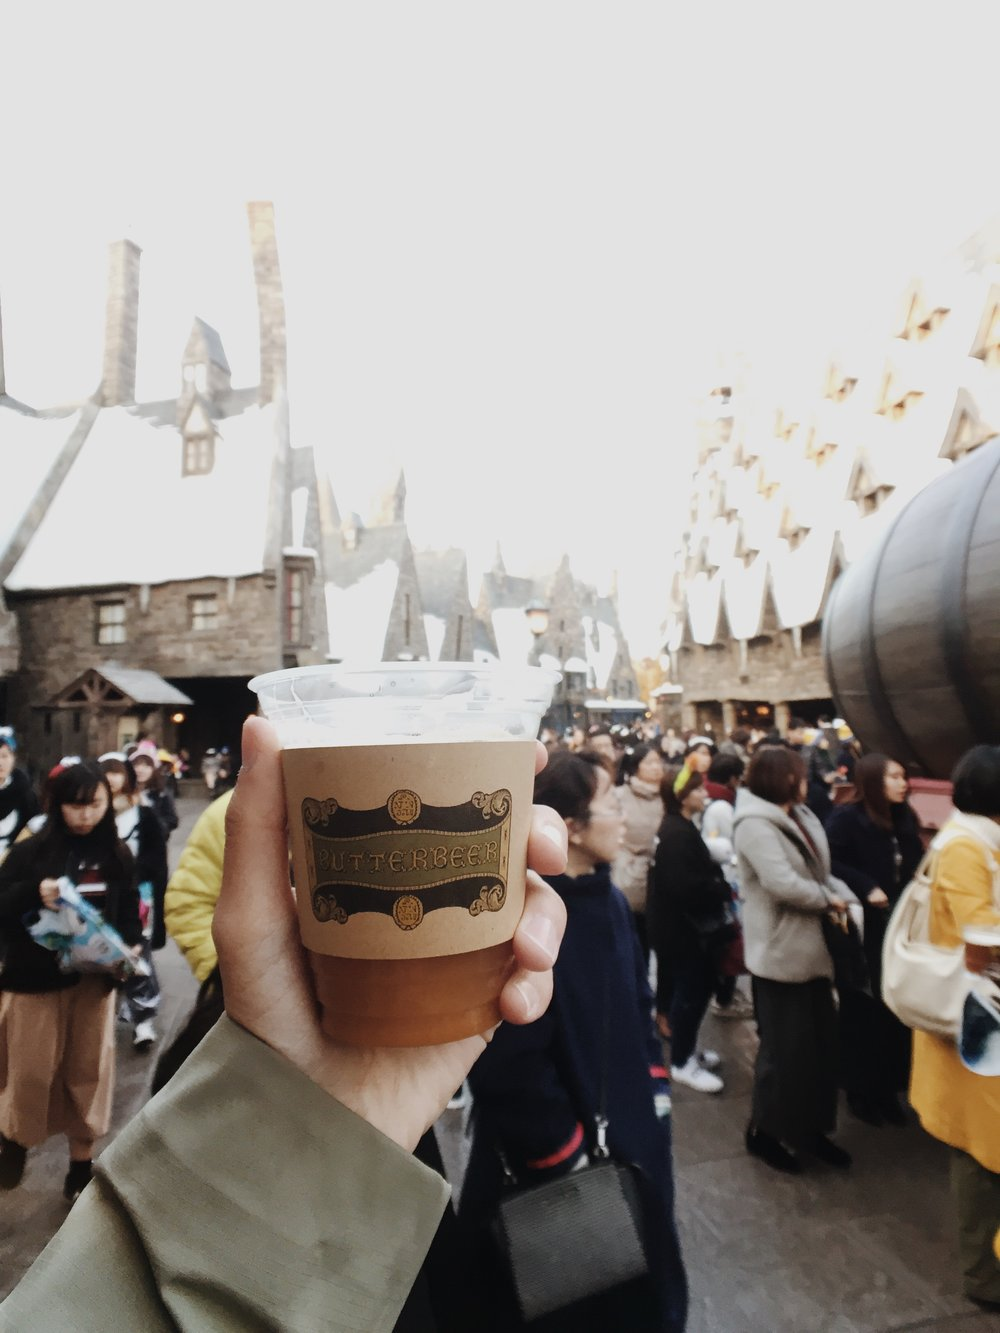 Try the famous alcohol-free Butter Beer!